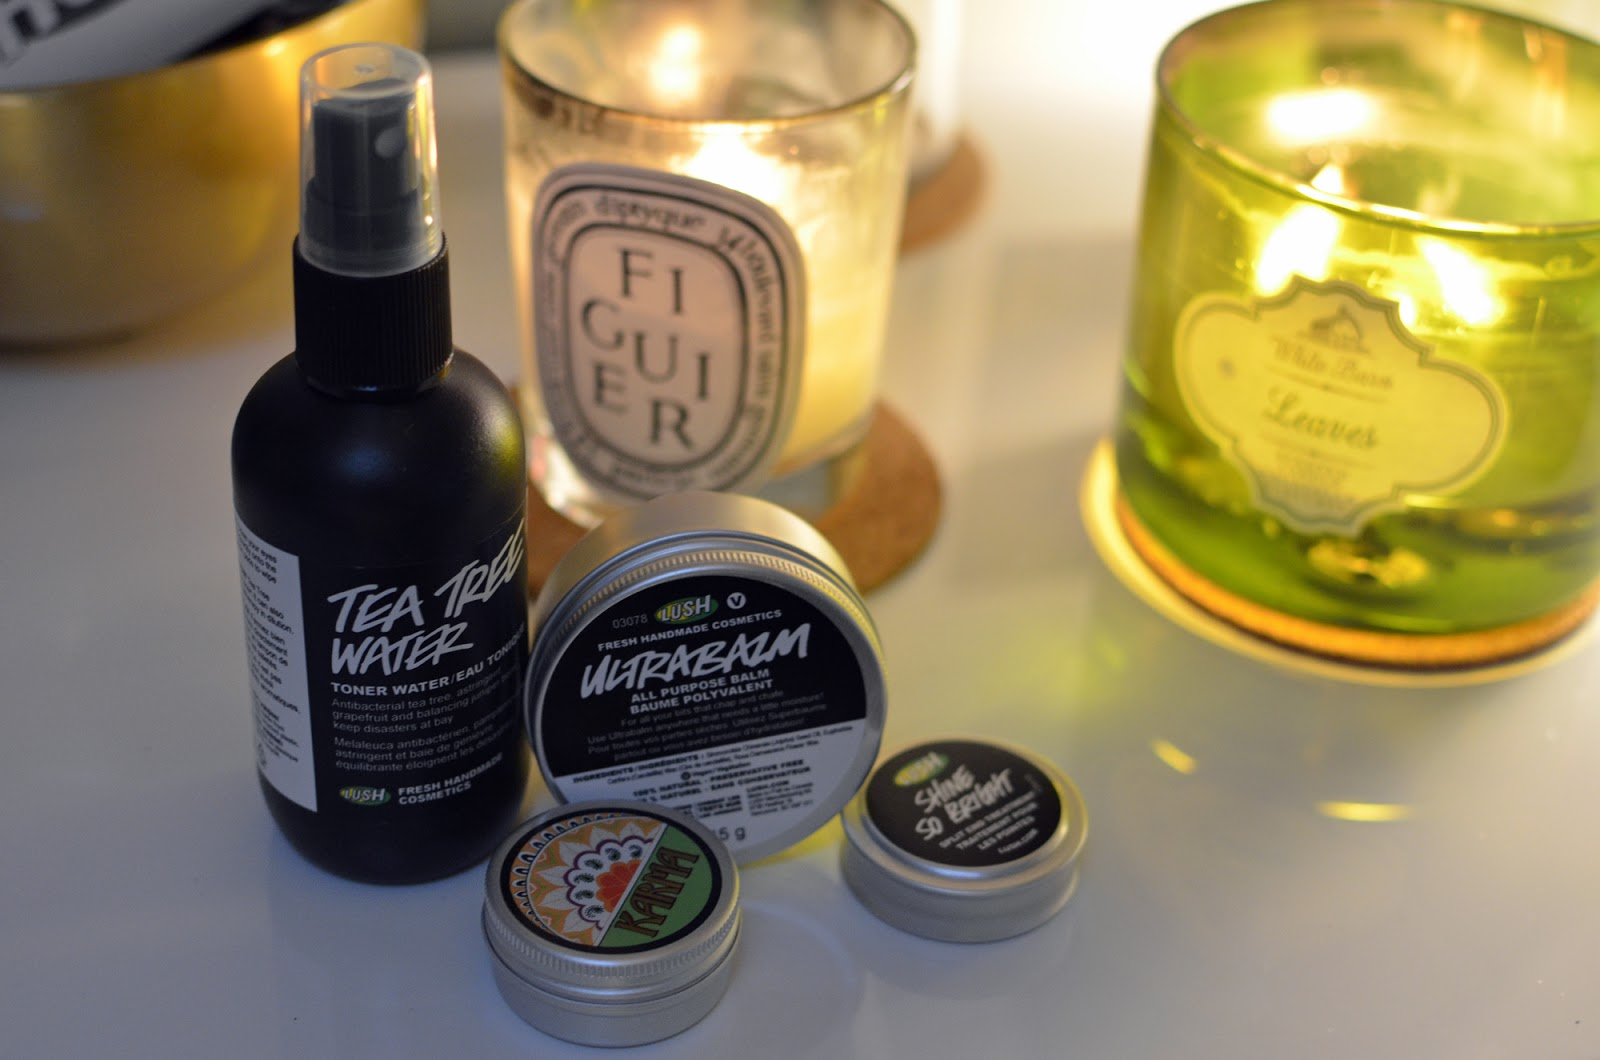 LUSH haul ft. Ultrabalm, Tea Tree Water, Shine So Bright, and Karma Solid Perfume